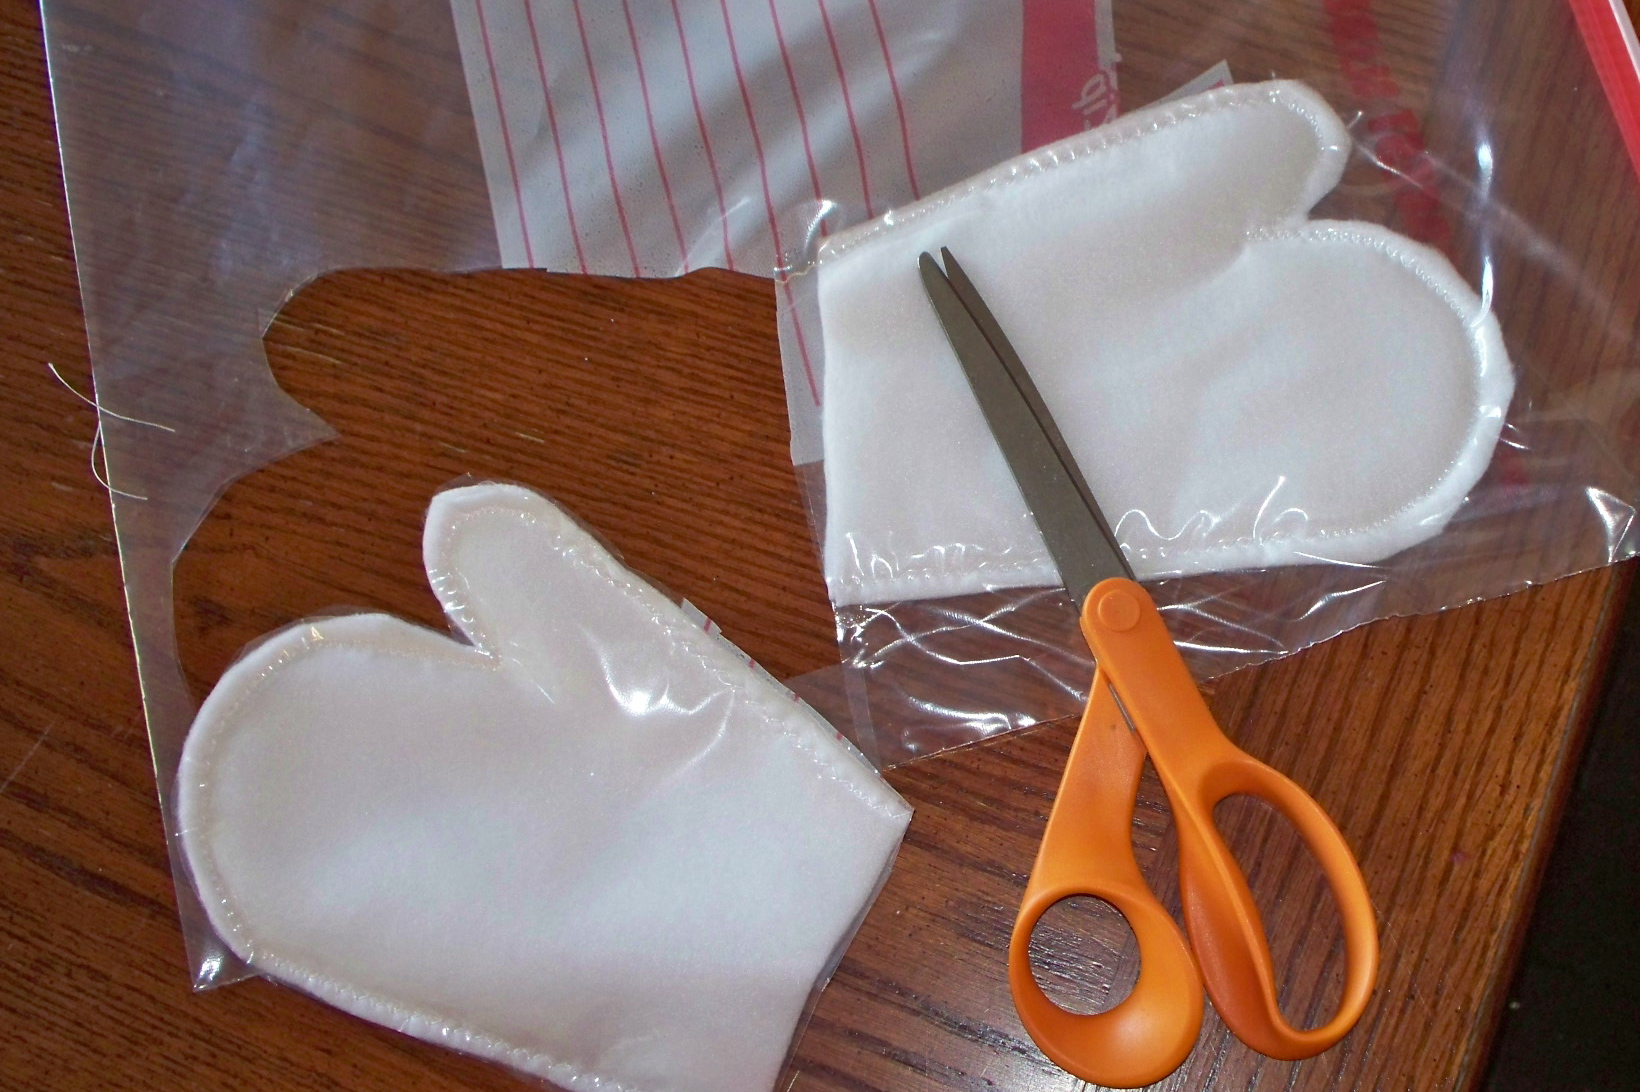 Cutting out mitten with plastic